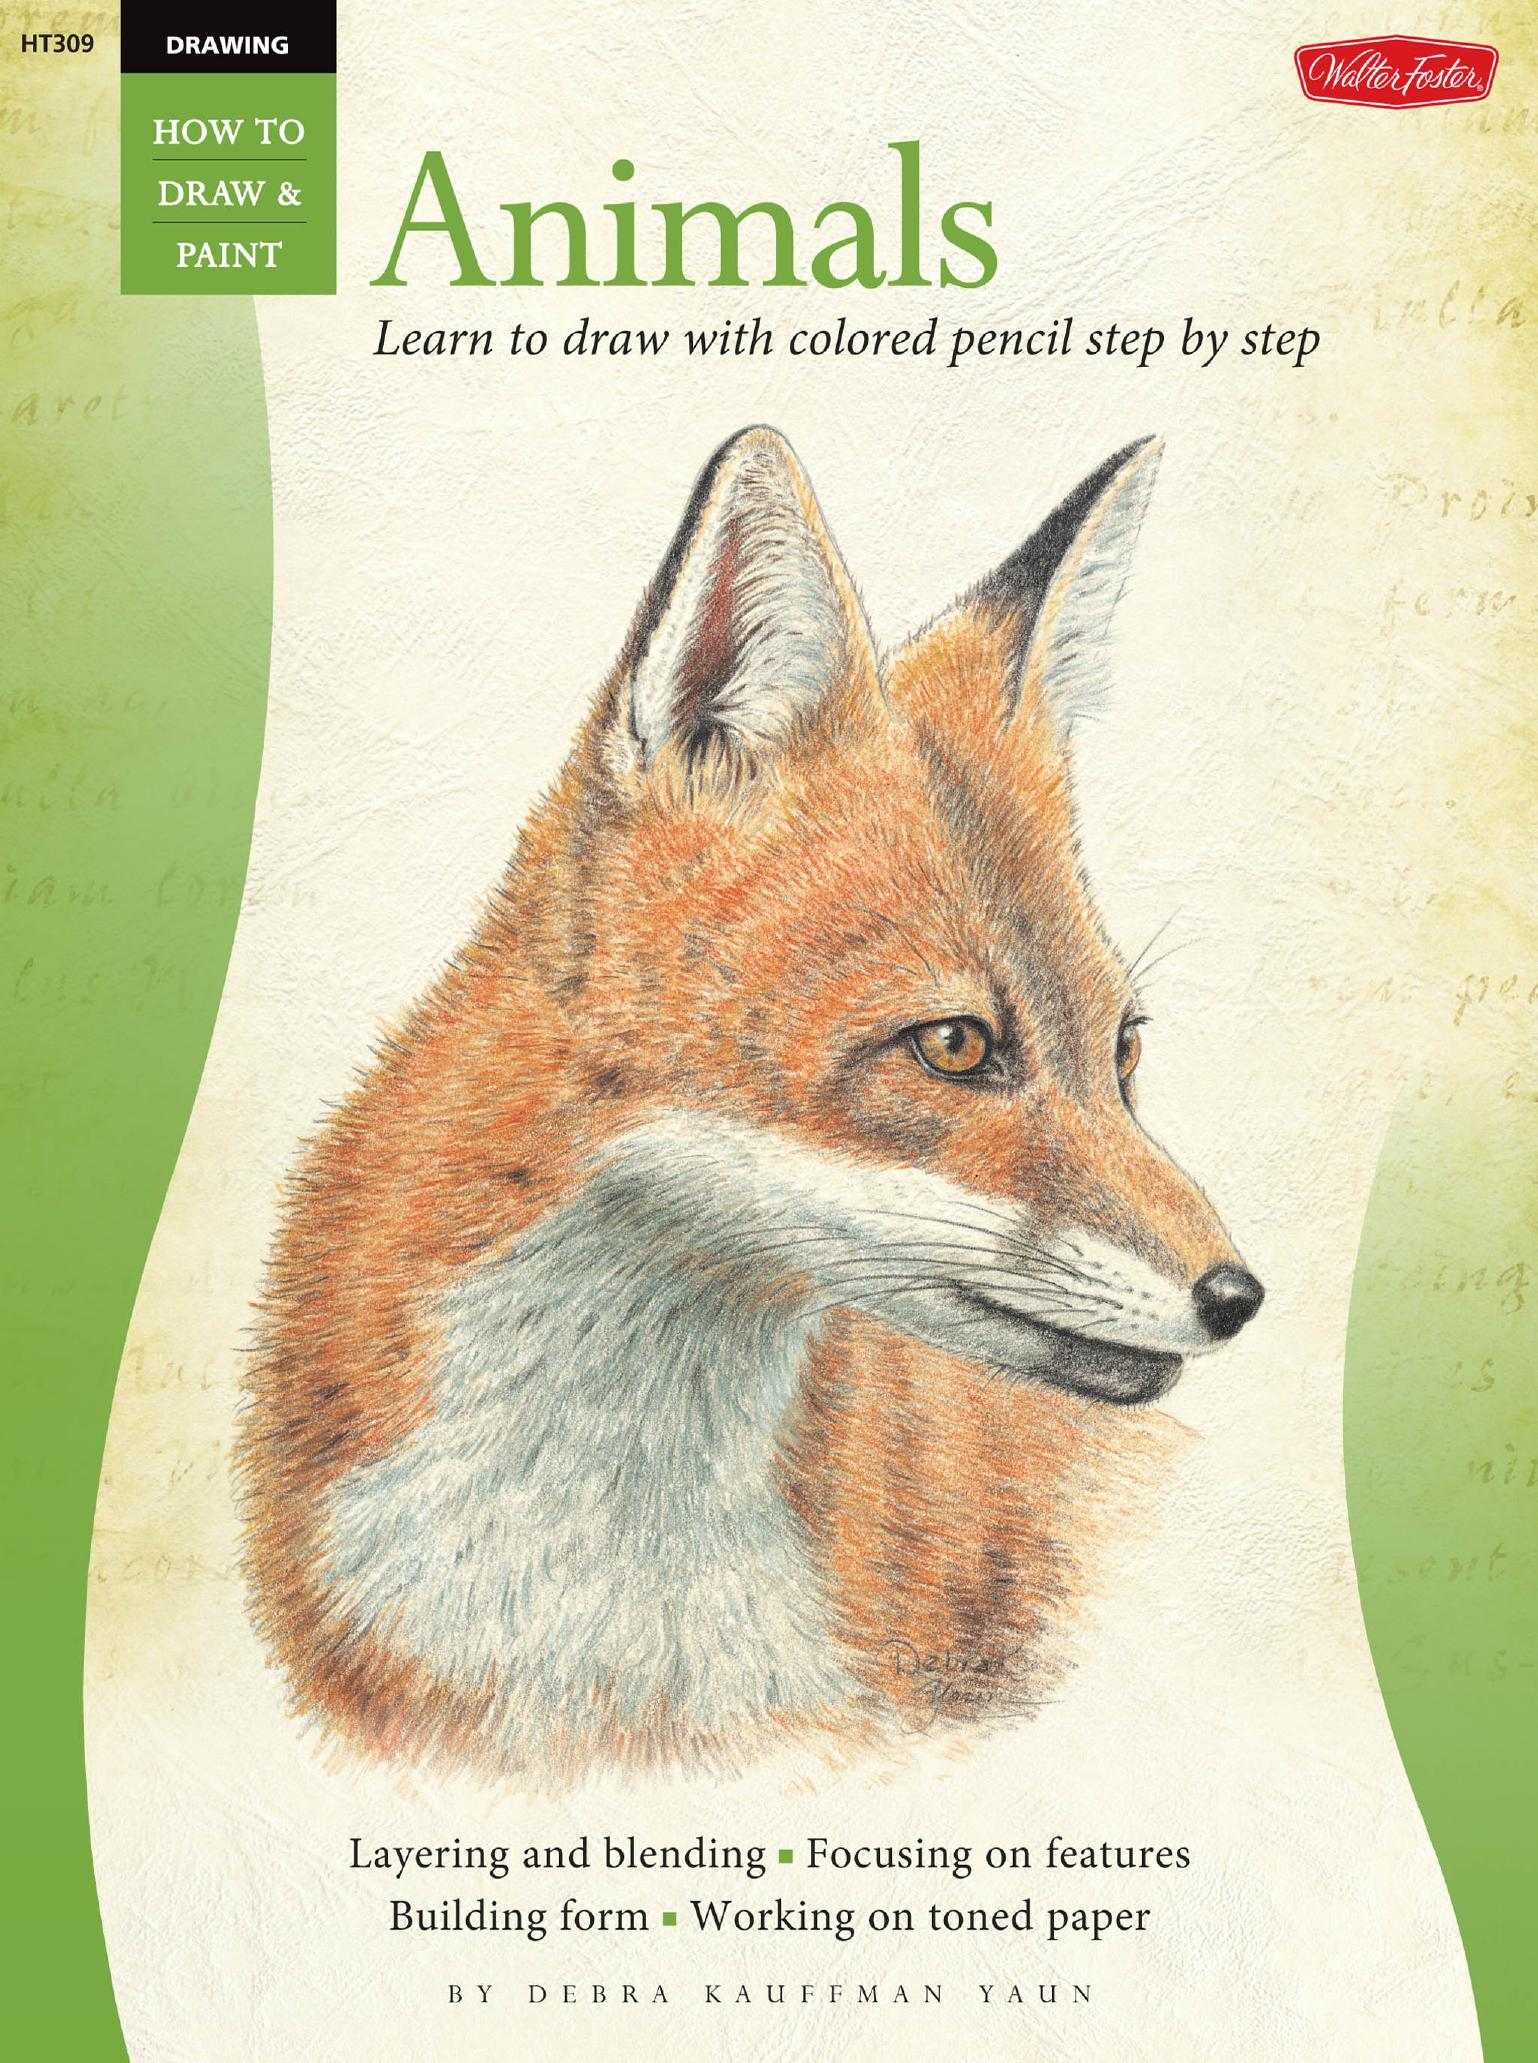 Animals in Colored Pencil: Learn to Draw Step by Step (How to Draw and Paint: Drawing)